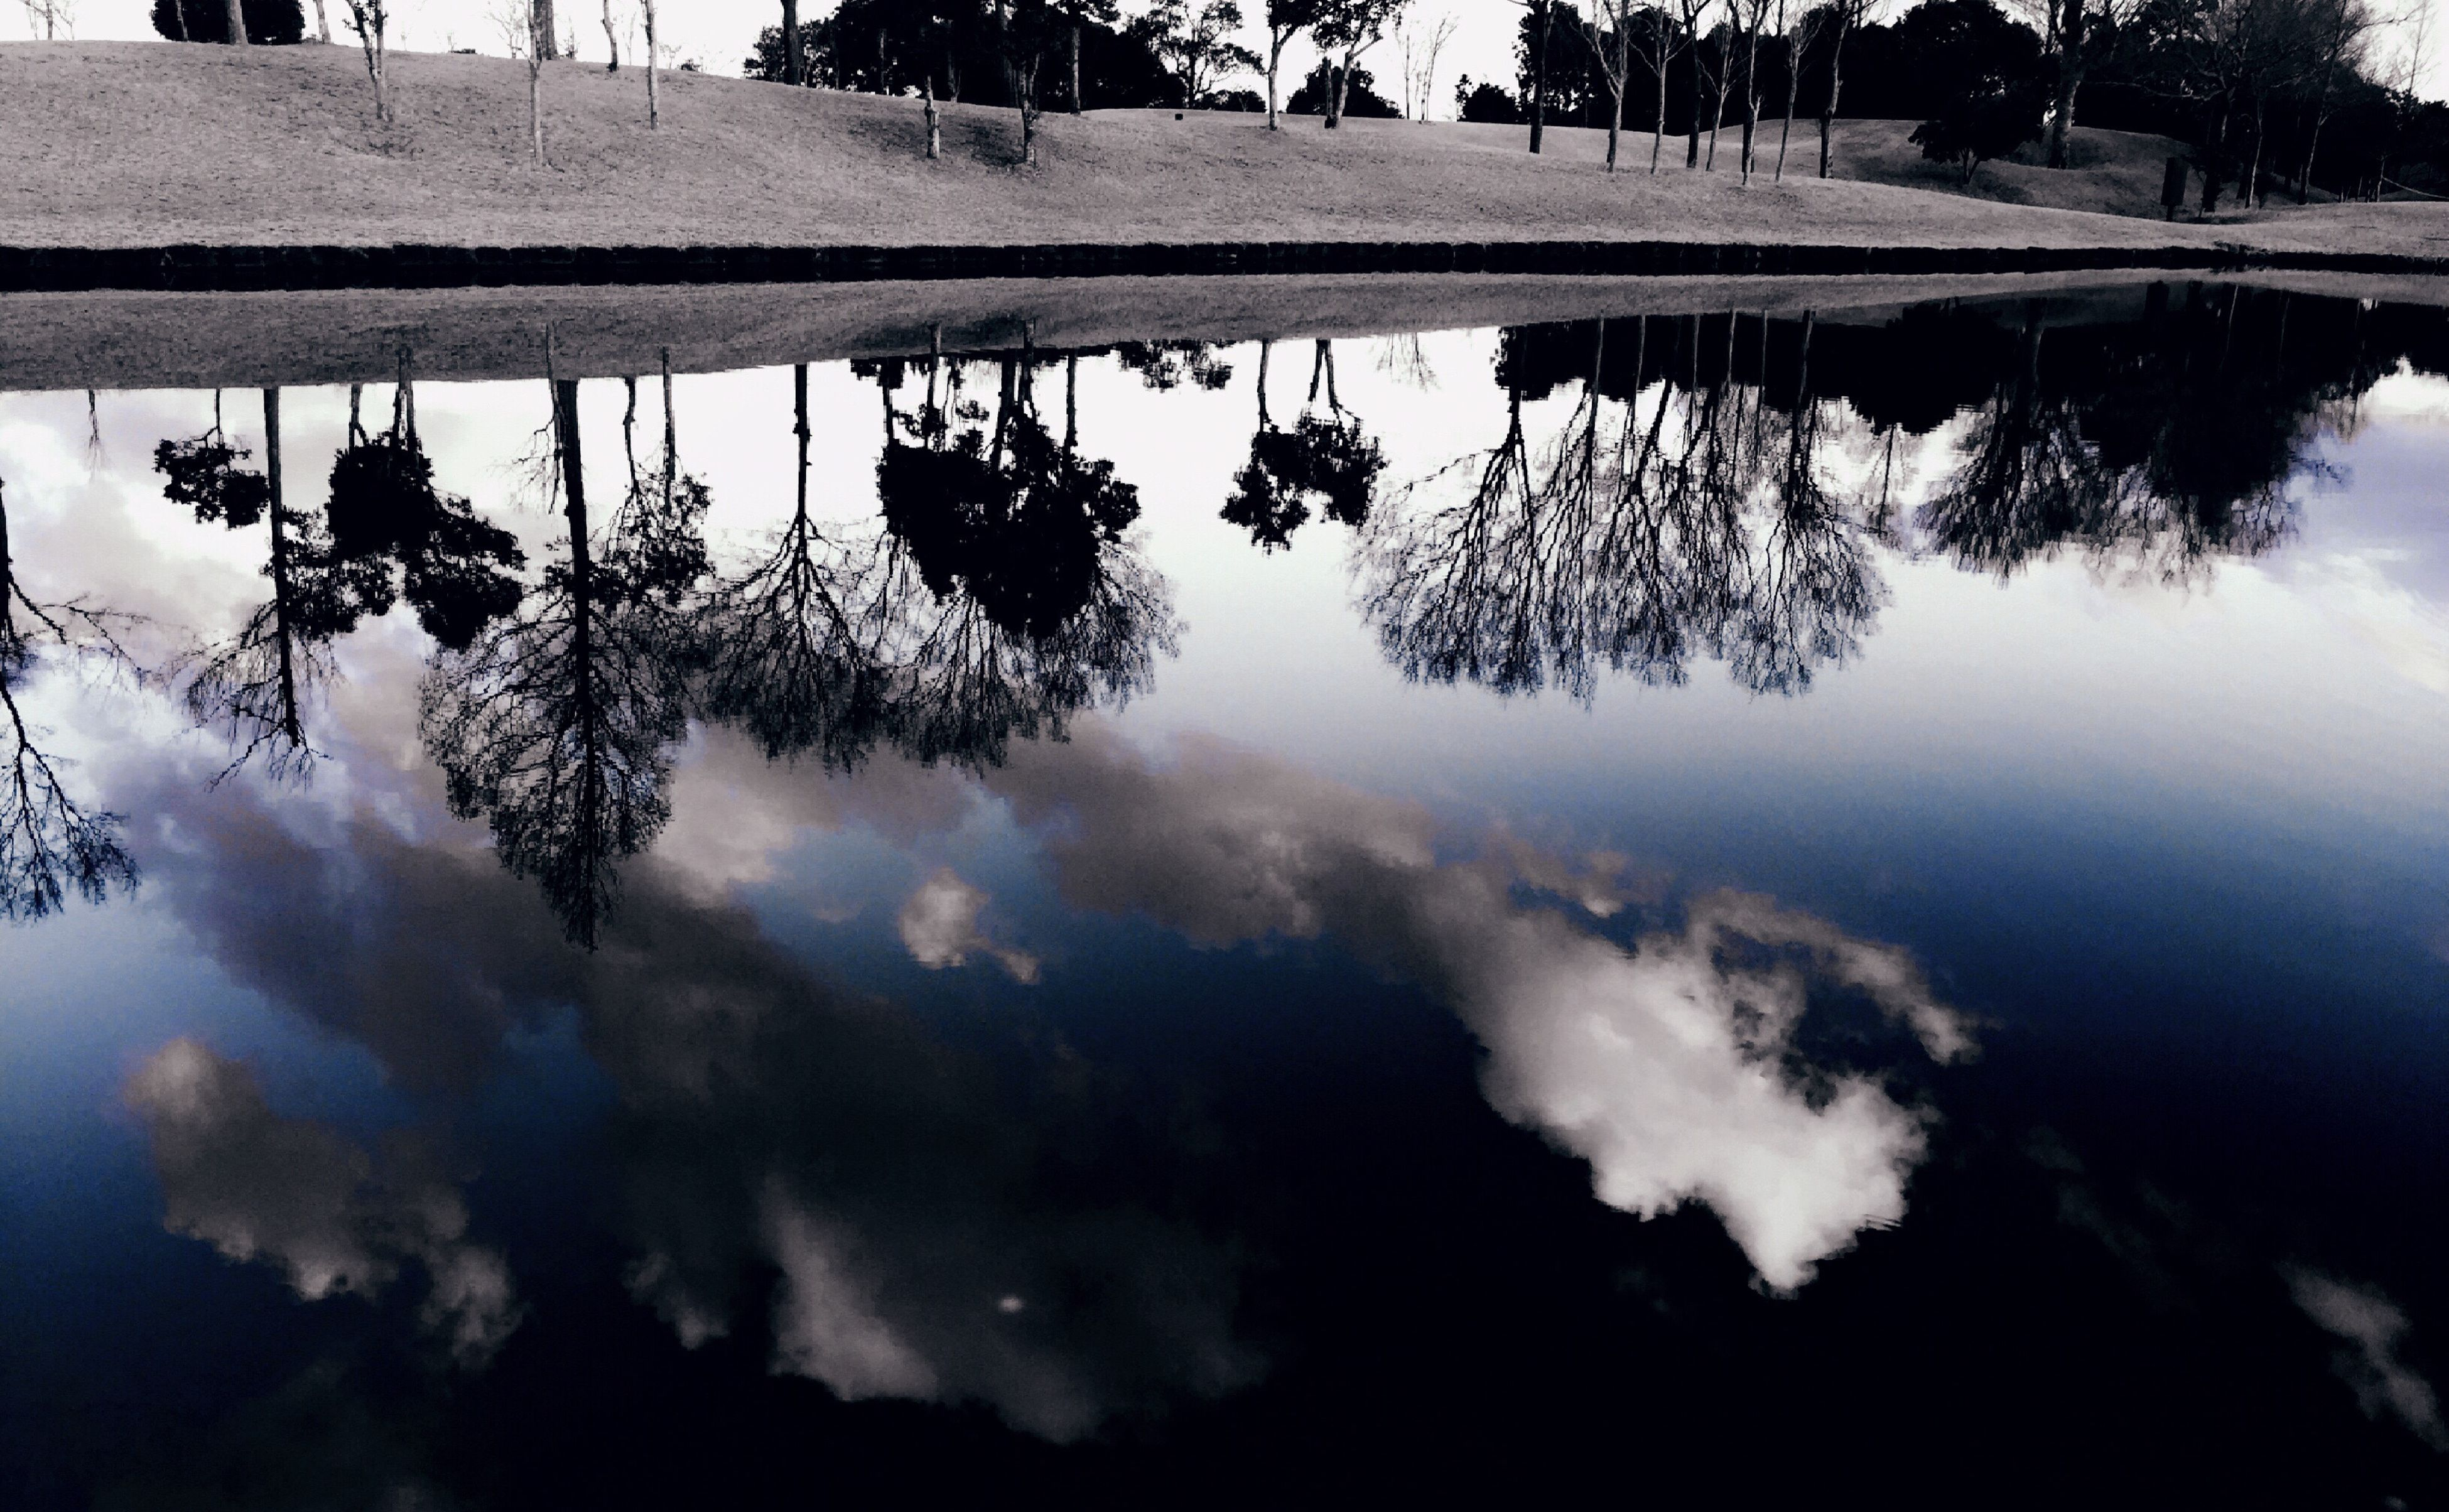 tree, nature, sky, reflection, water, silhouette, lake, beauty in nature, no people, outdoors, tranquility, scenics, cloud - sky, day